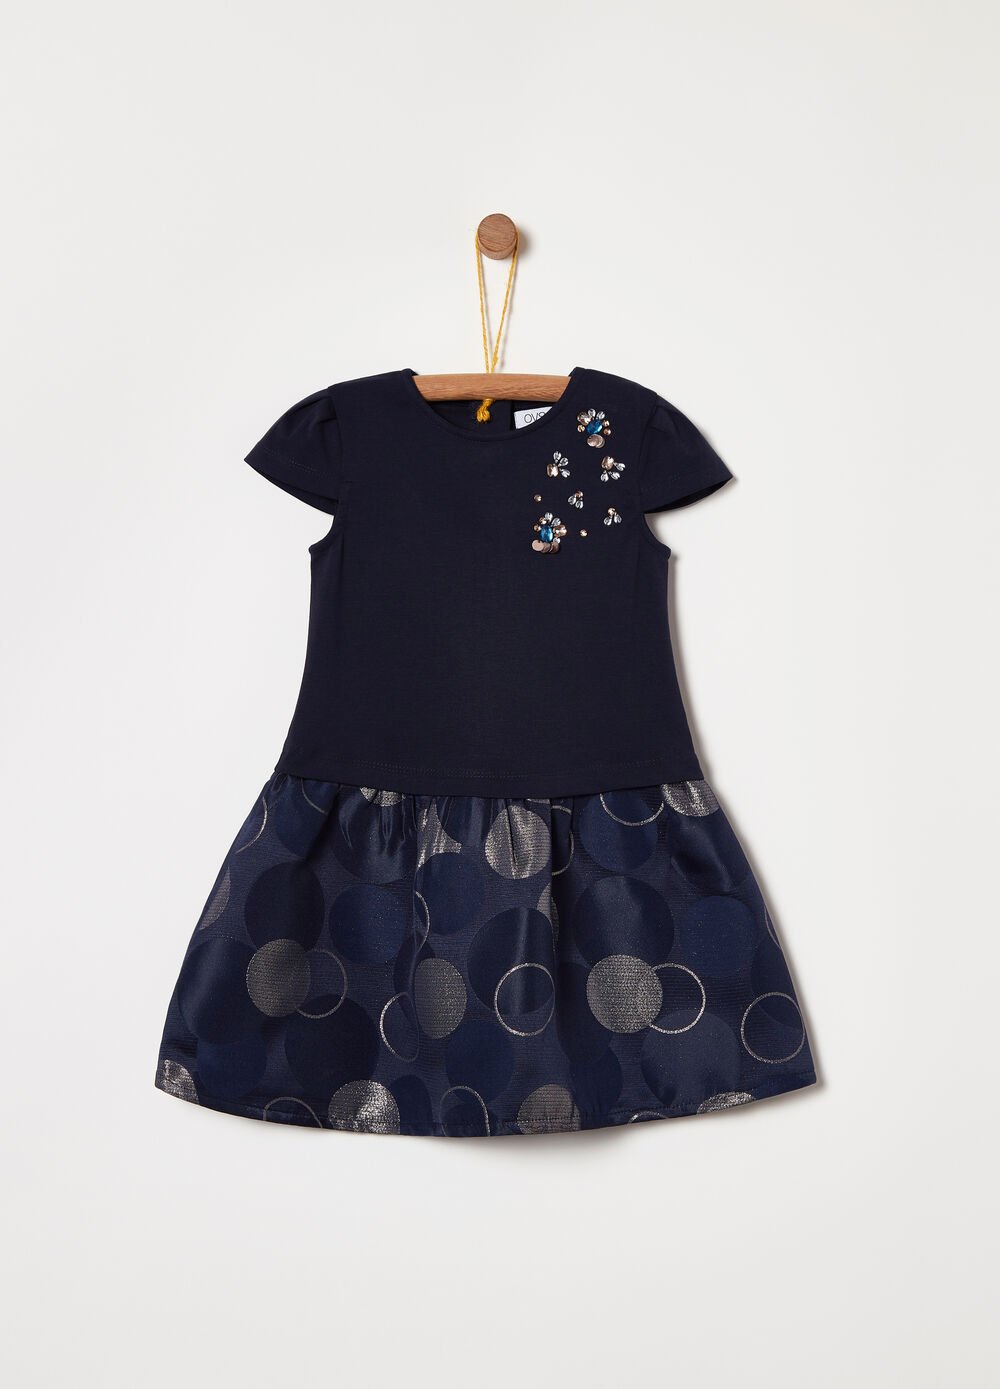 Milano-stitch dress with appliqués